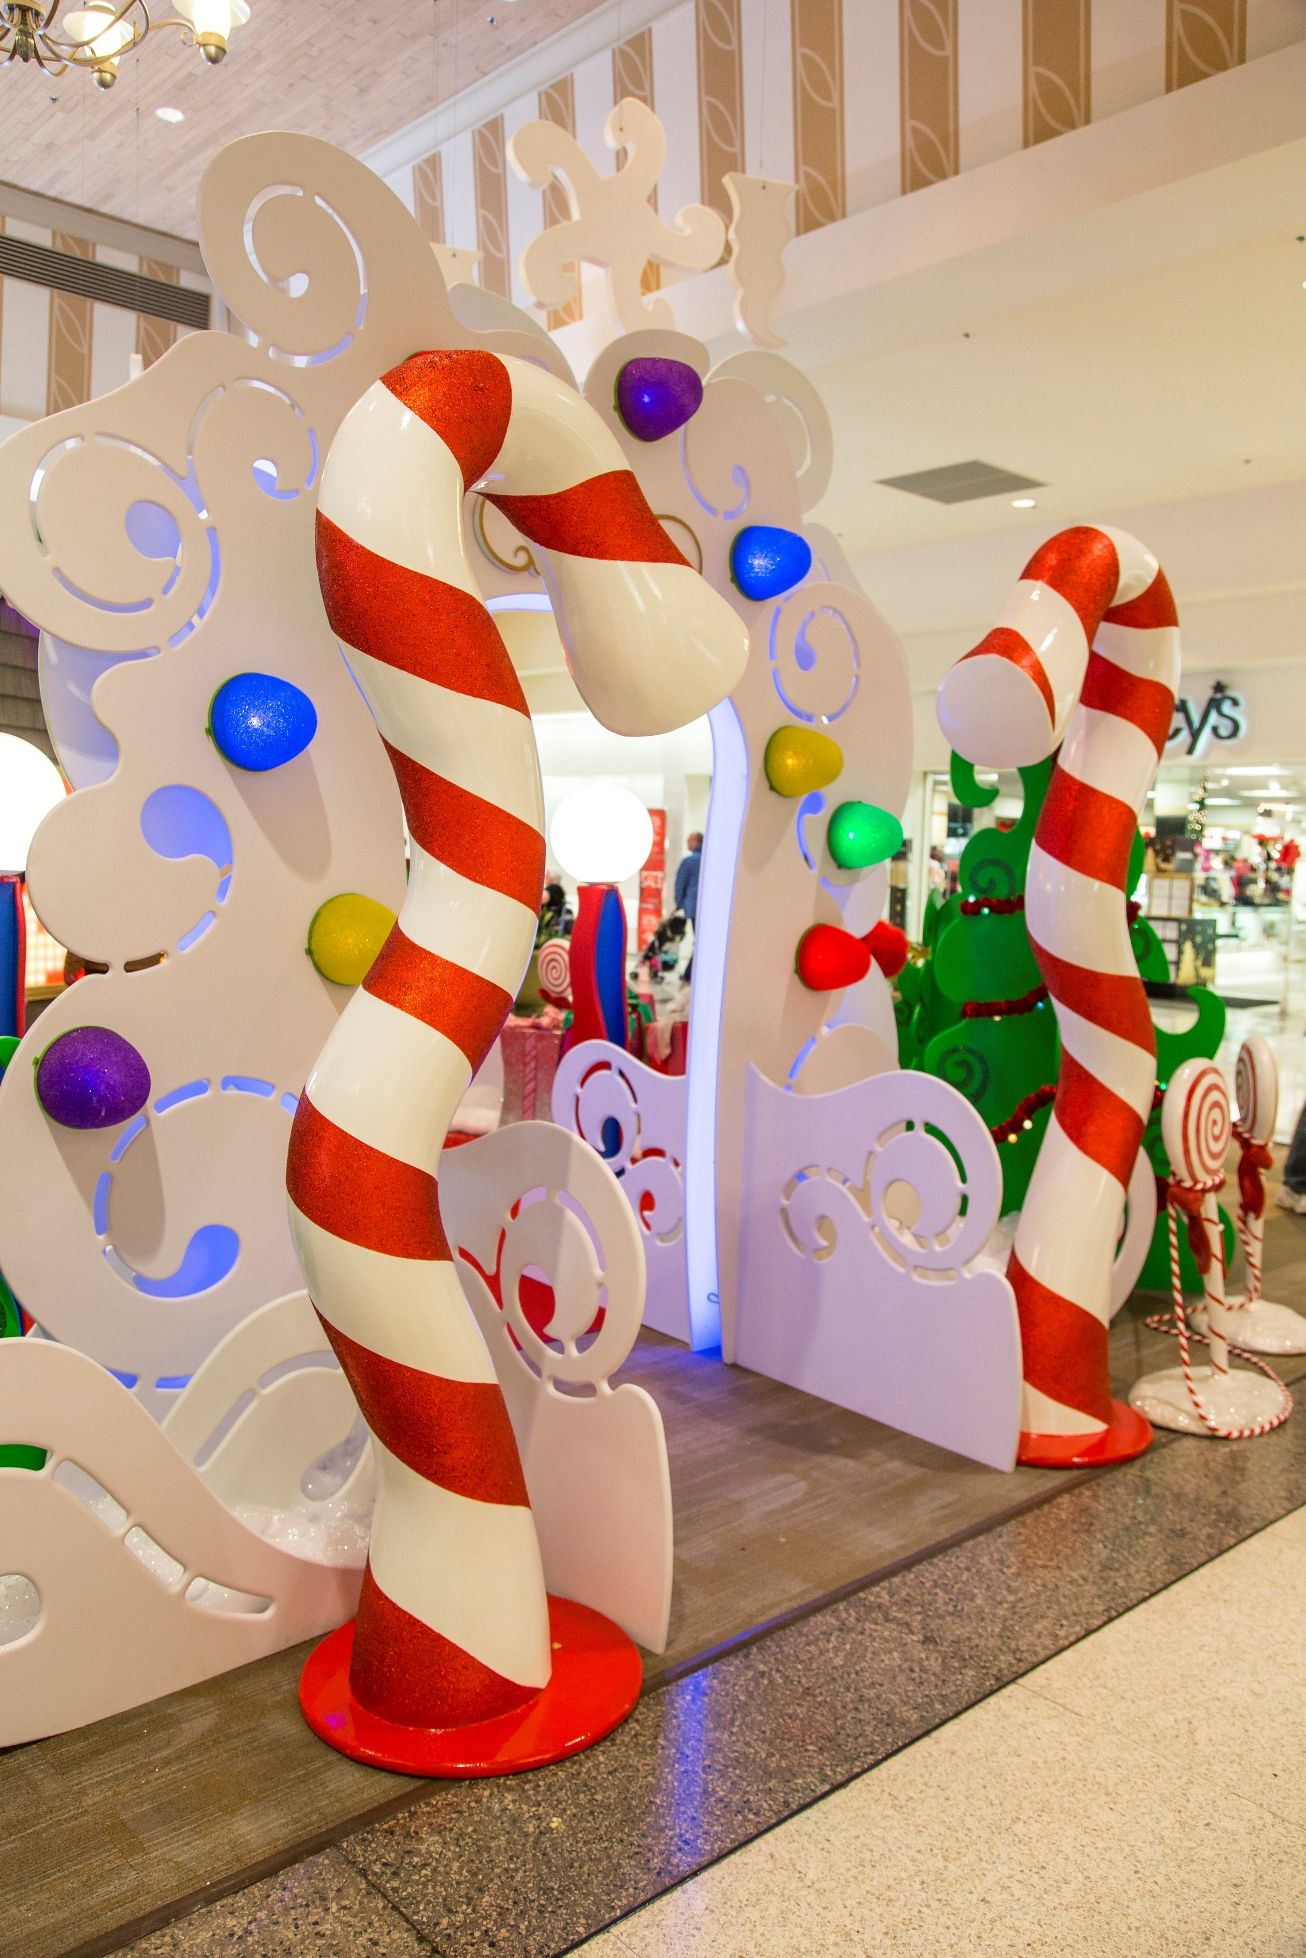 Larger Than Life Wriggled Candy Canes And Peppermint